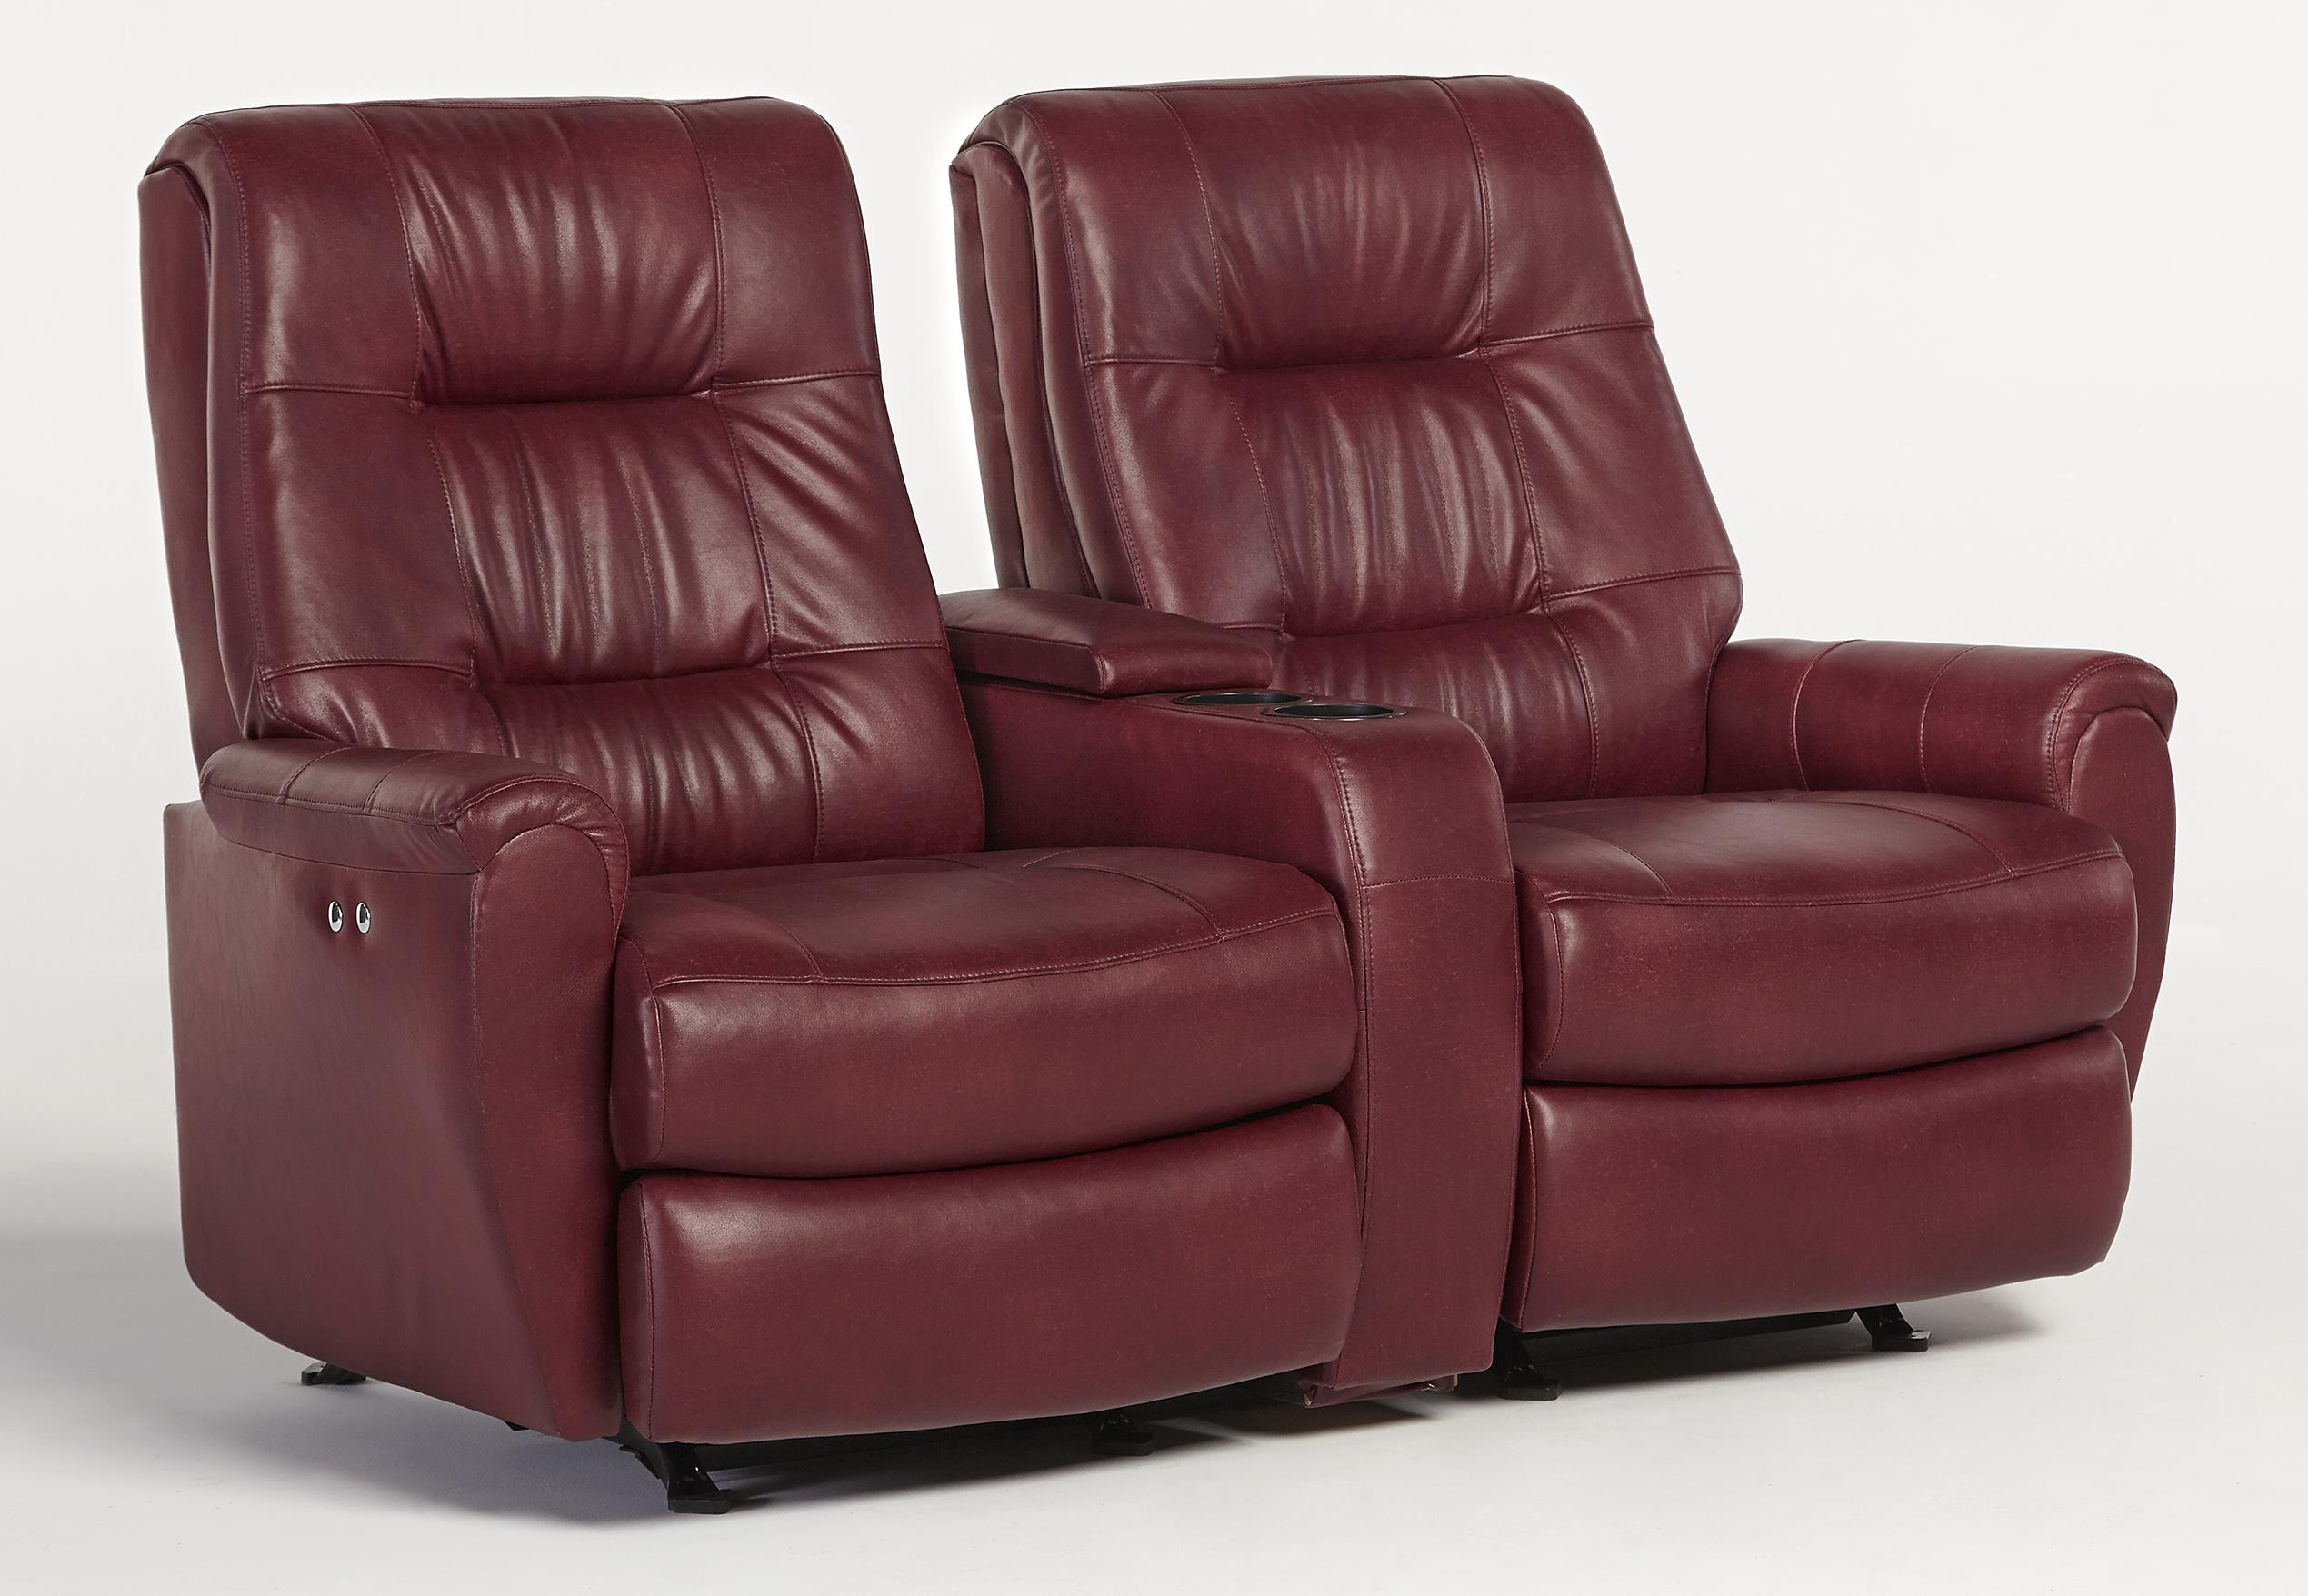 Best home furnishings felicia small scale rocking reclining loveseat with drink holder and Loveseat with cup holders